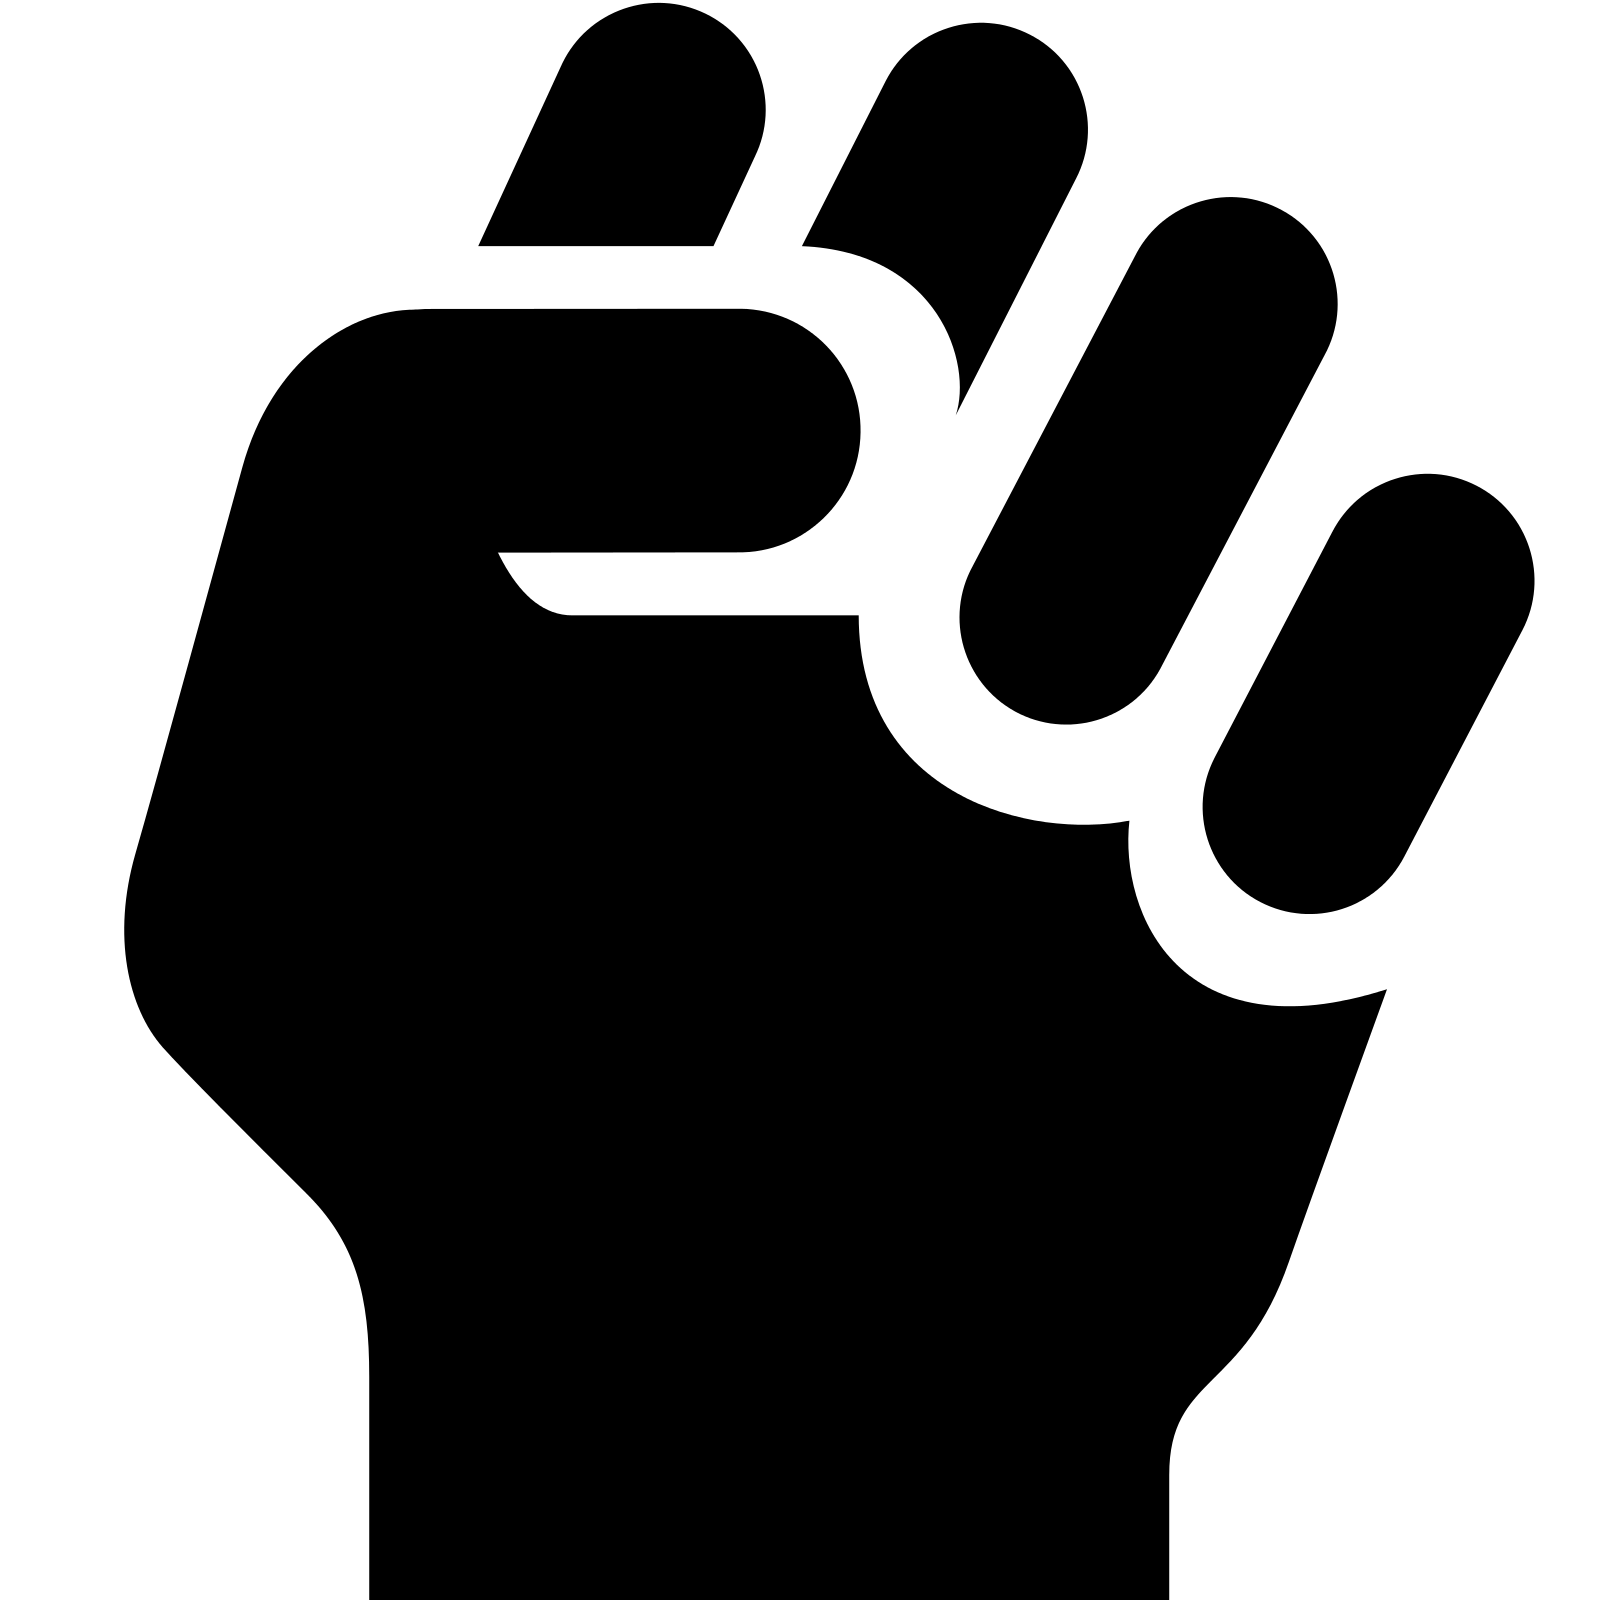 Fist clipart clinched Icon Clenched Fist and Fist